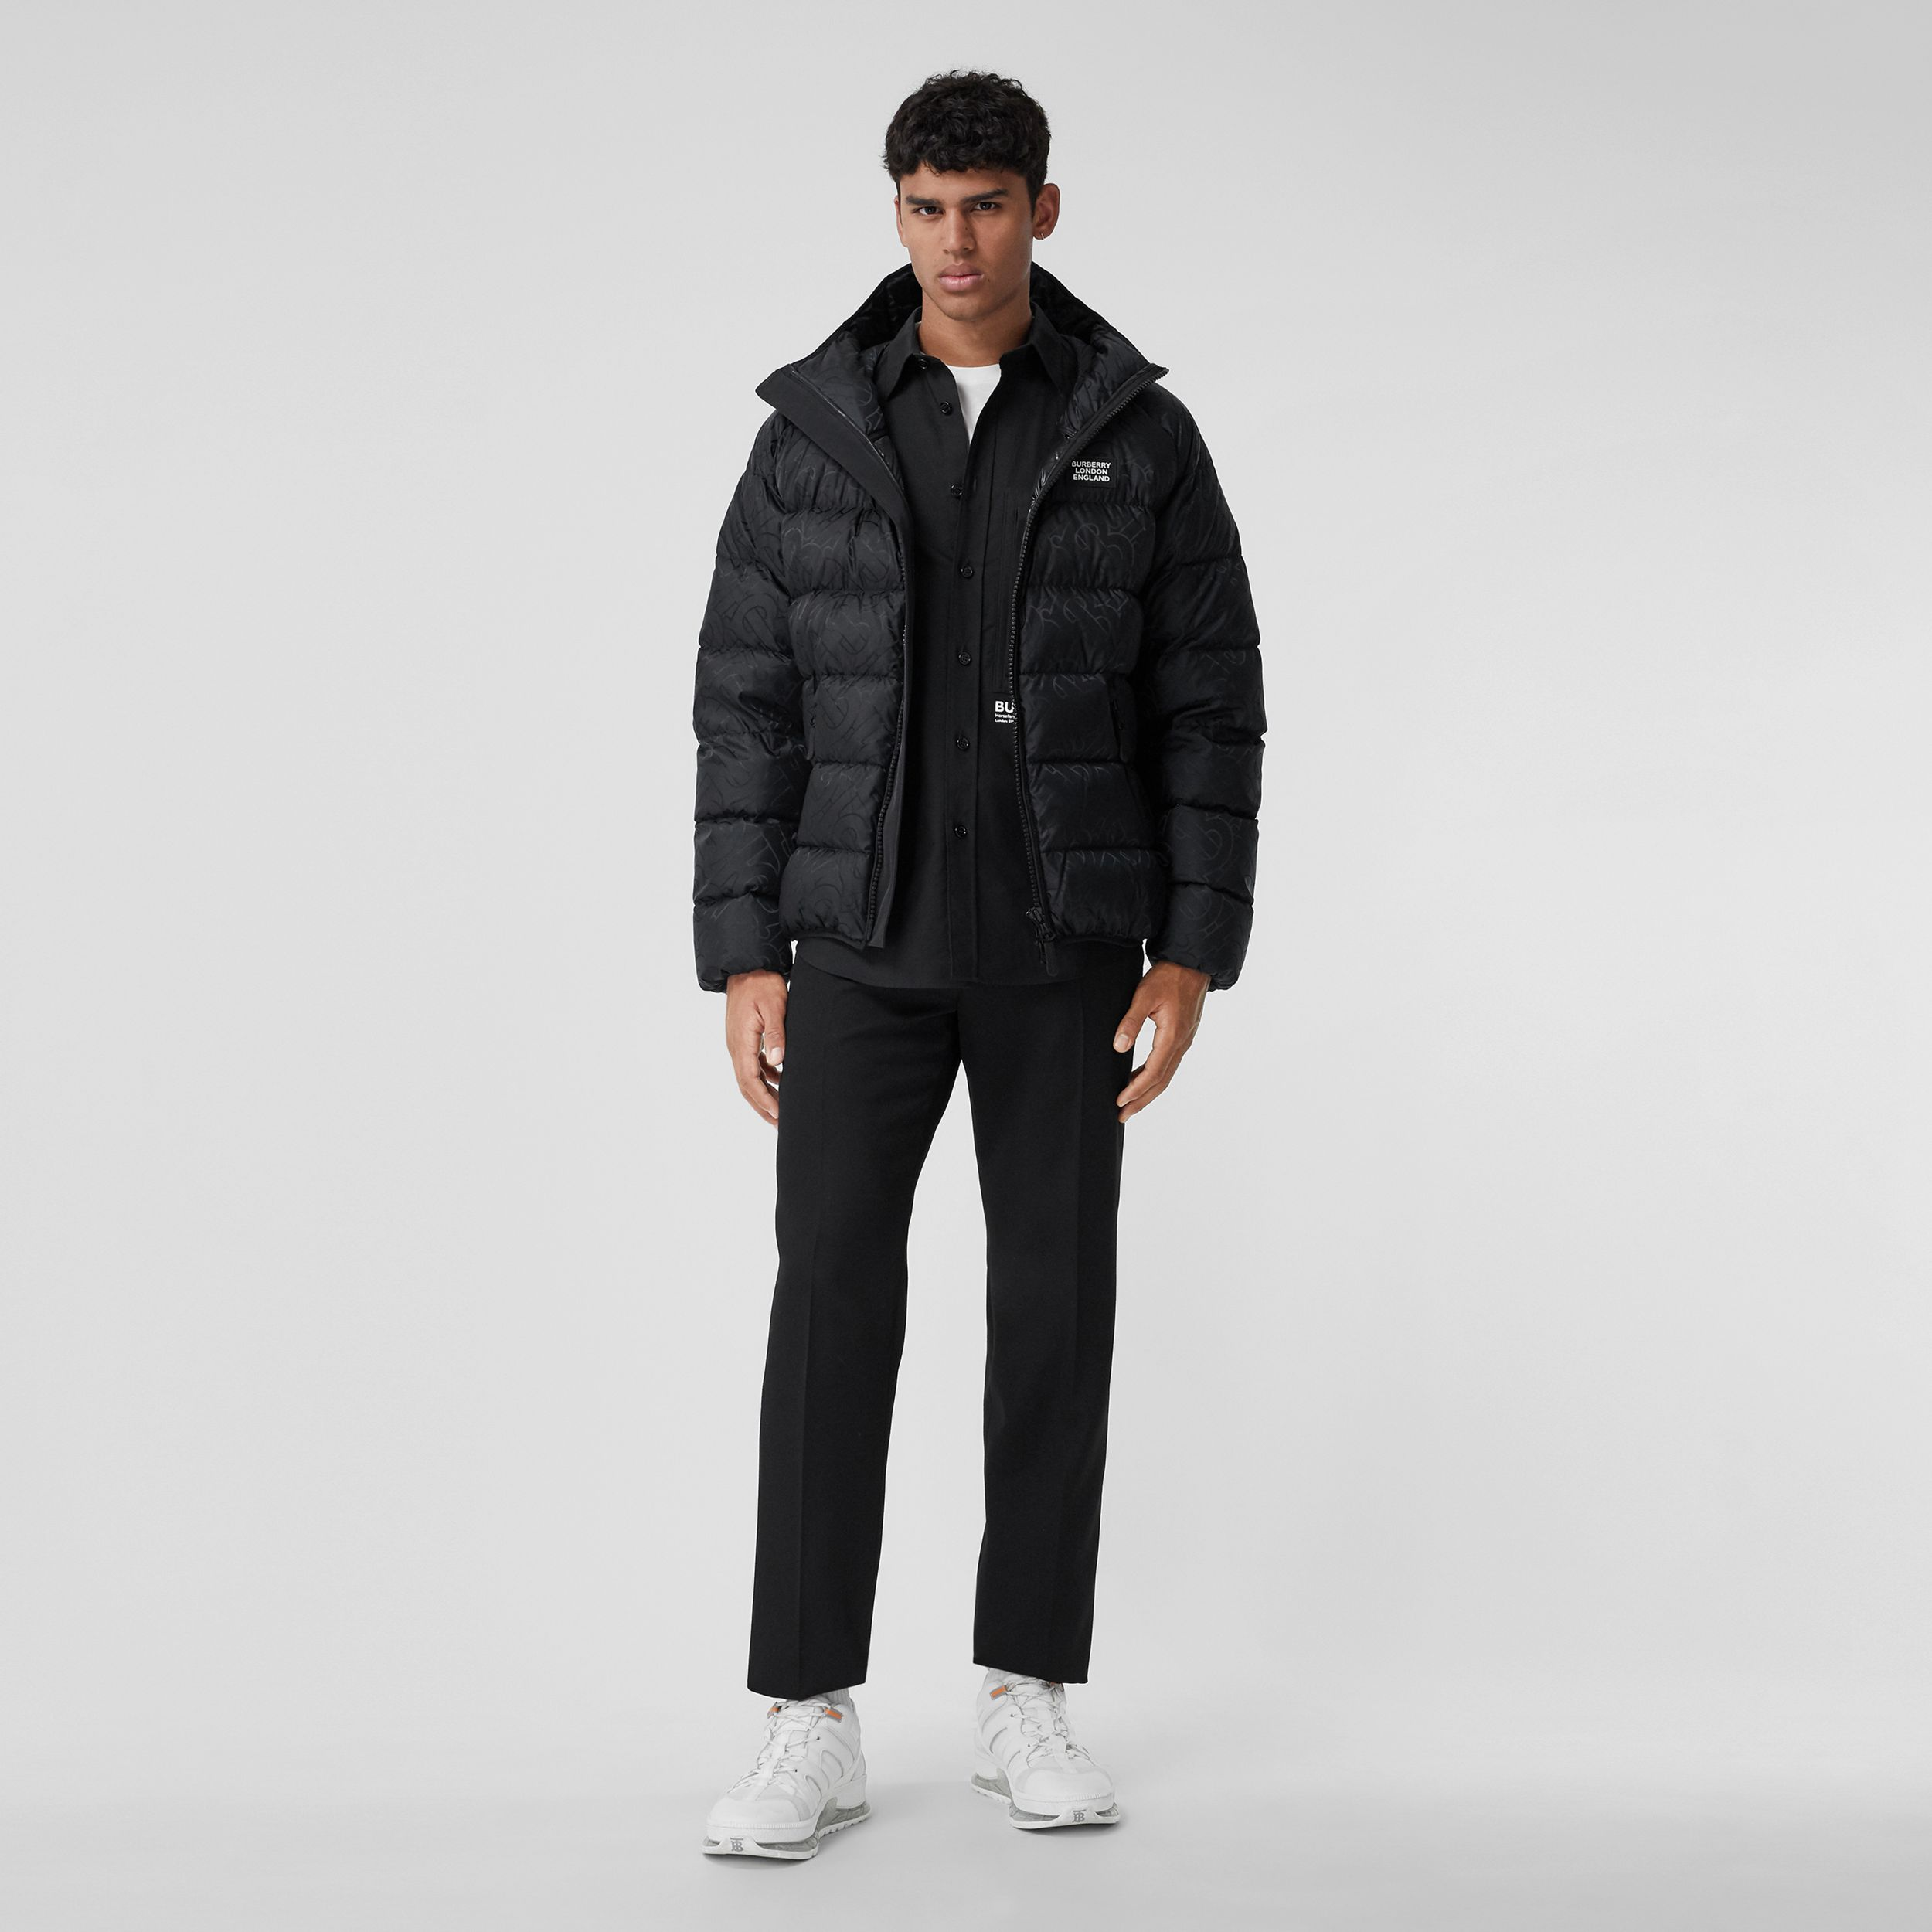 Monogram Jacquard Hooded Puffer Jacket in Black - Men | Burberry - 1